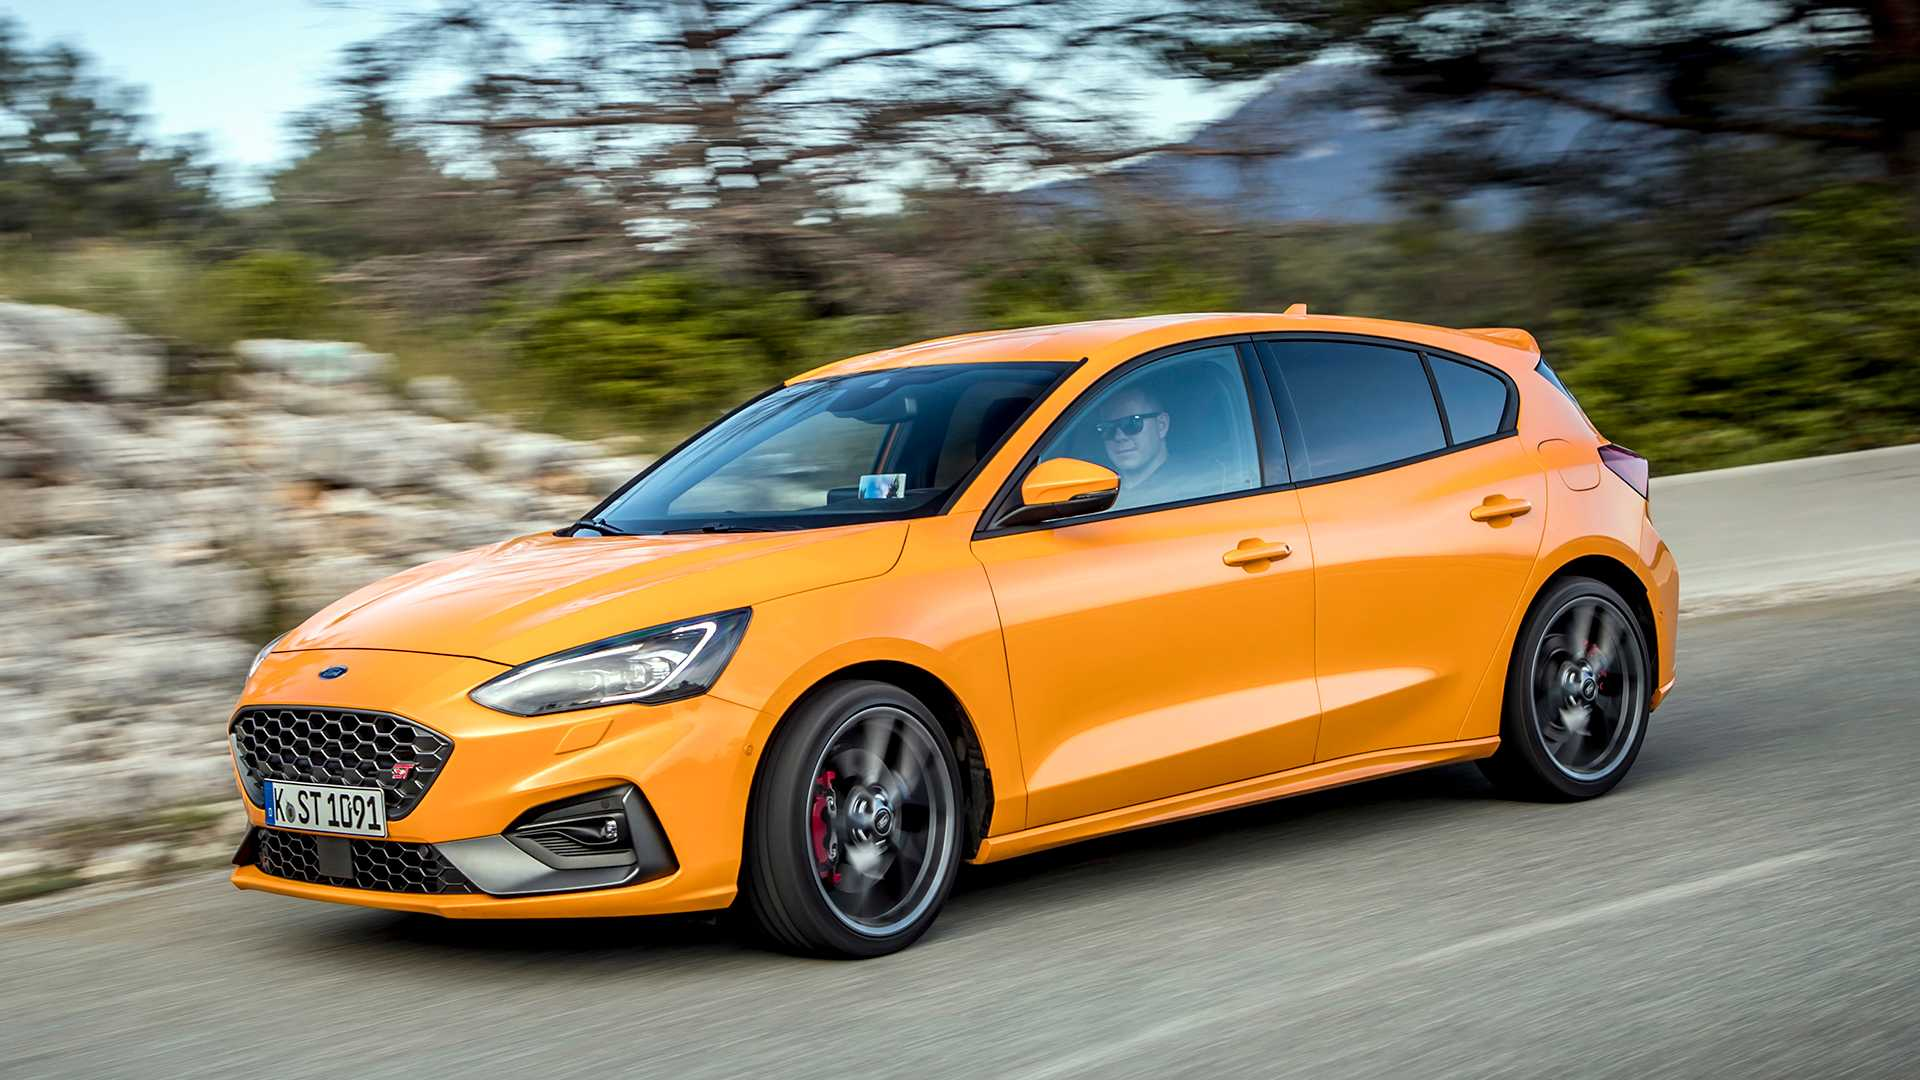 Focus St Horsepower >> 2019 Ford Focus St First Drive Another Energetic St